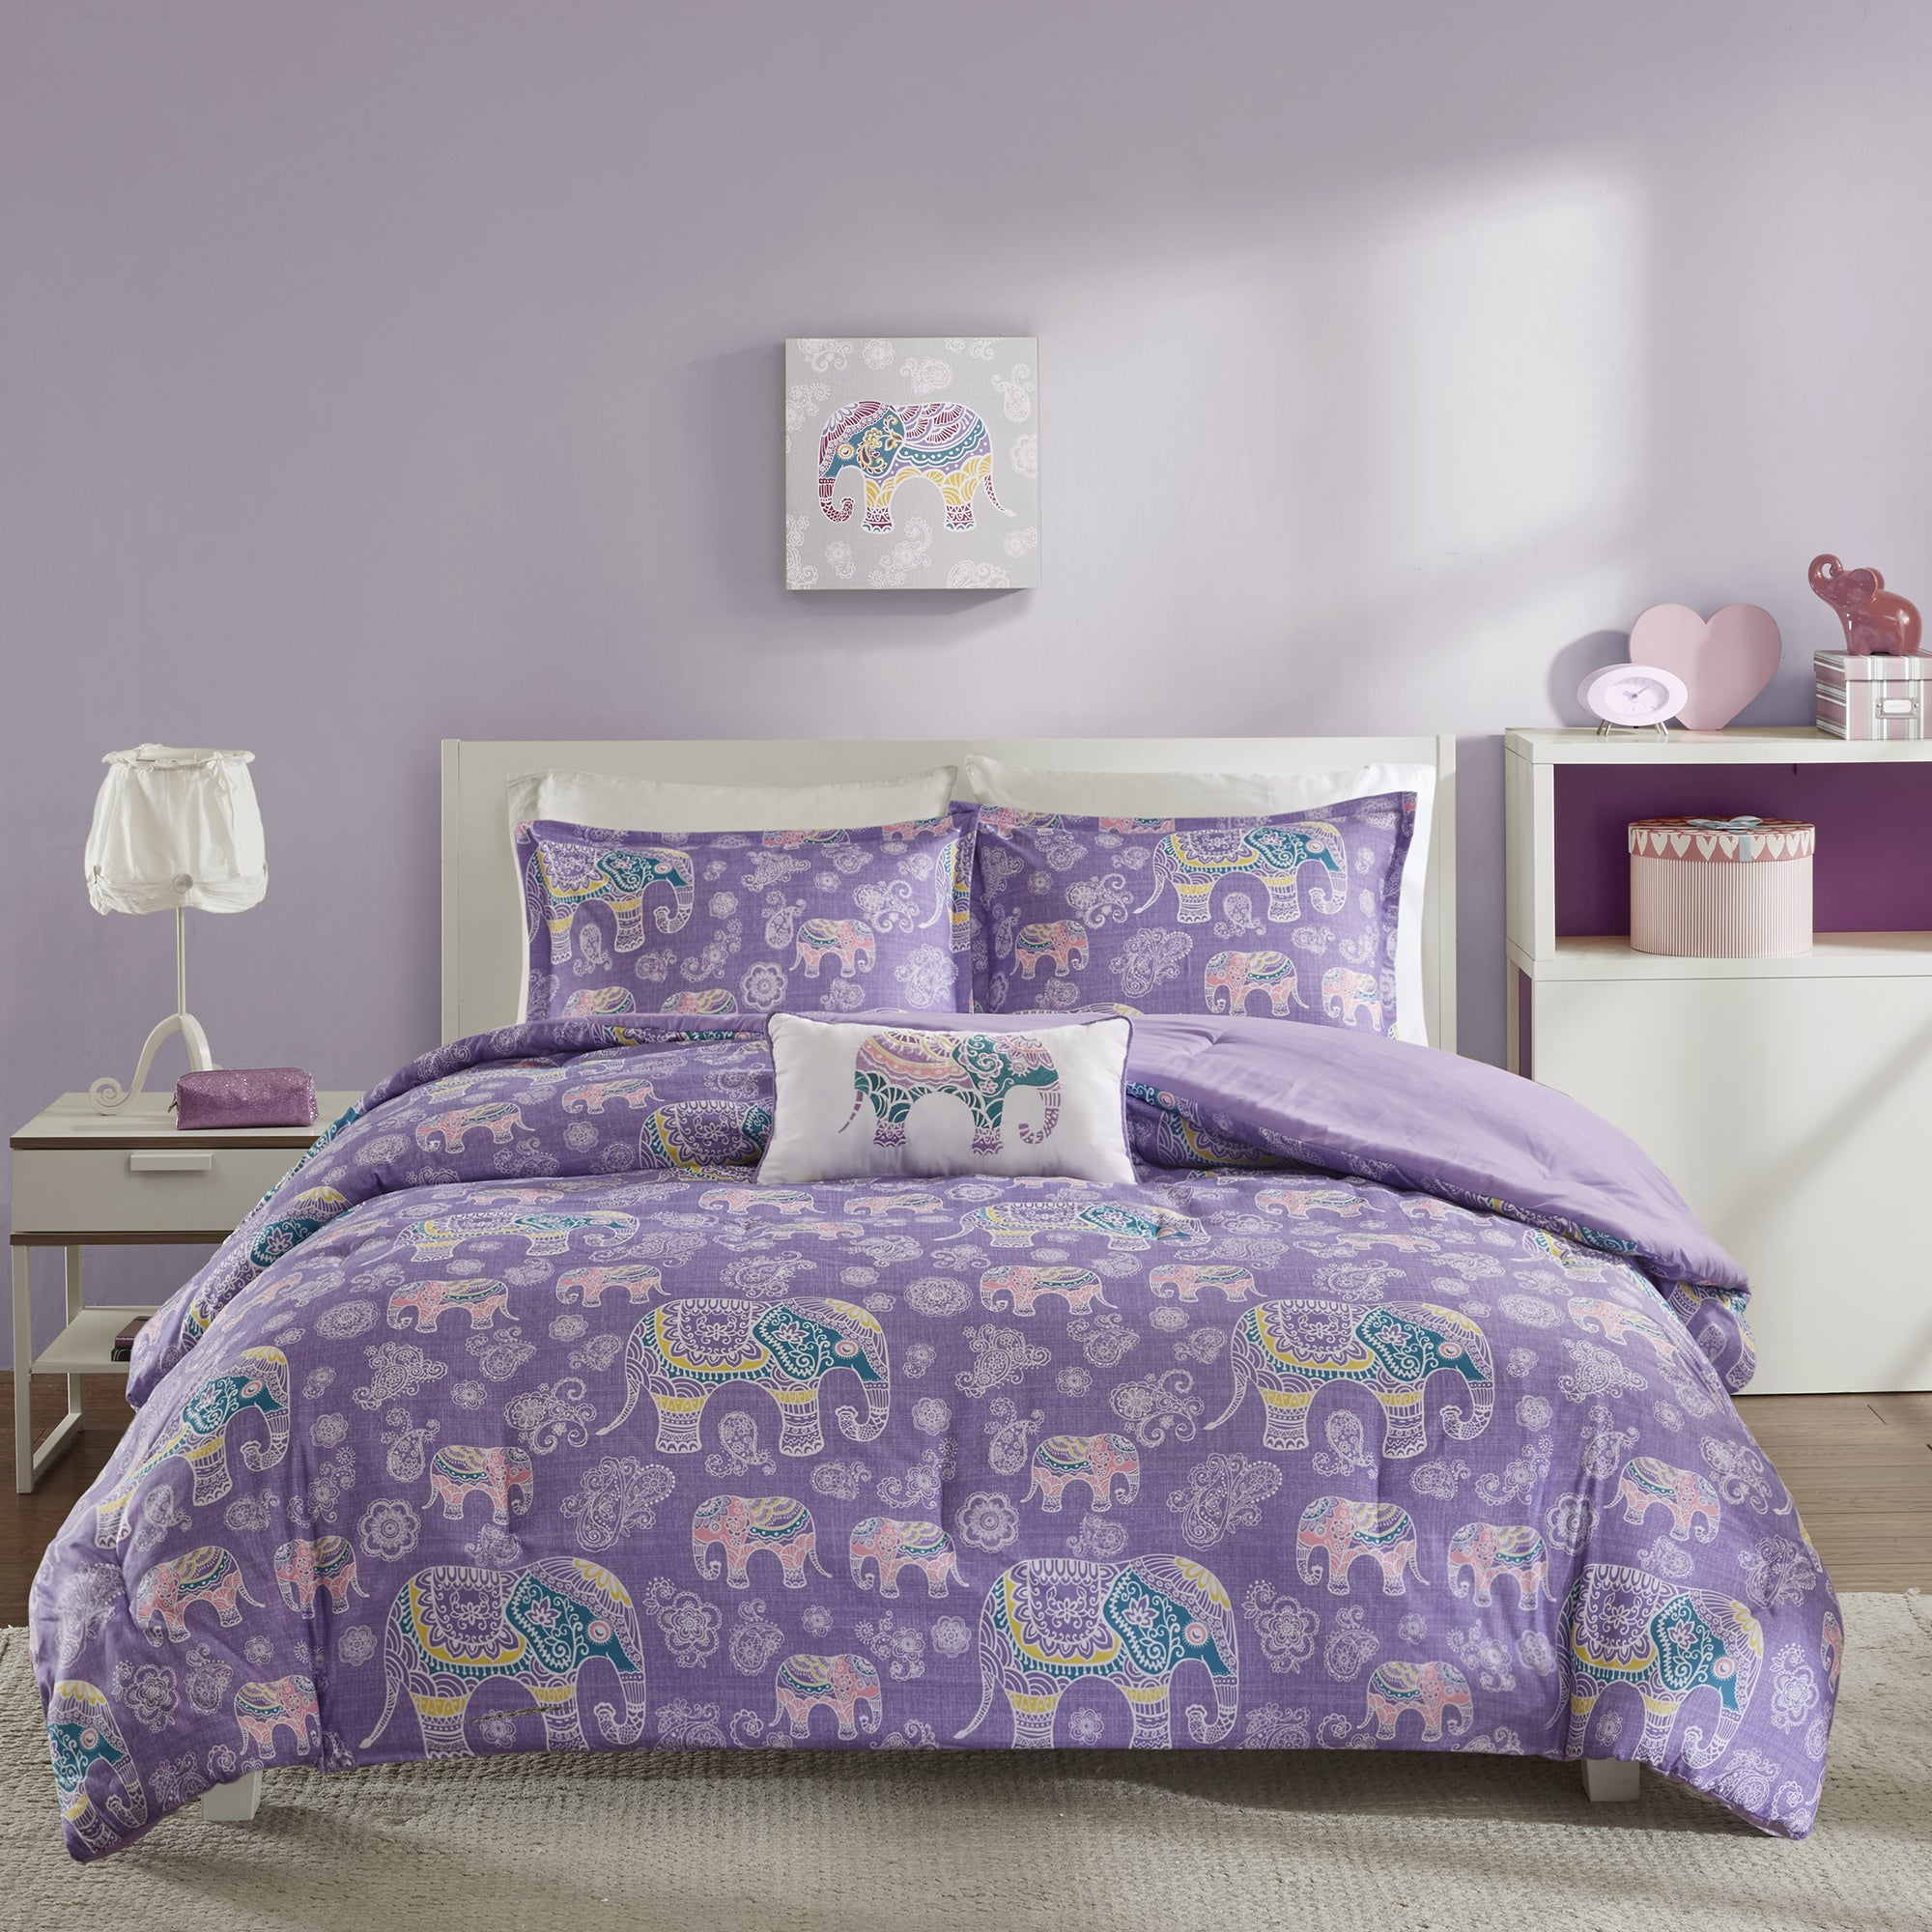 inuse hayneedle madison comforter morris product set bedding jla purple bed home by piece park cfm